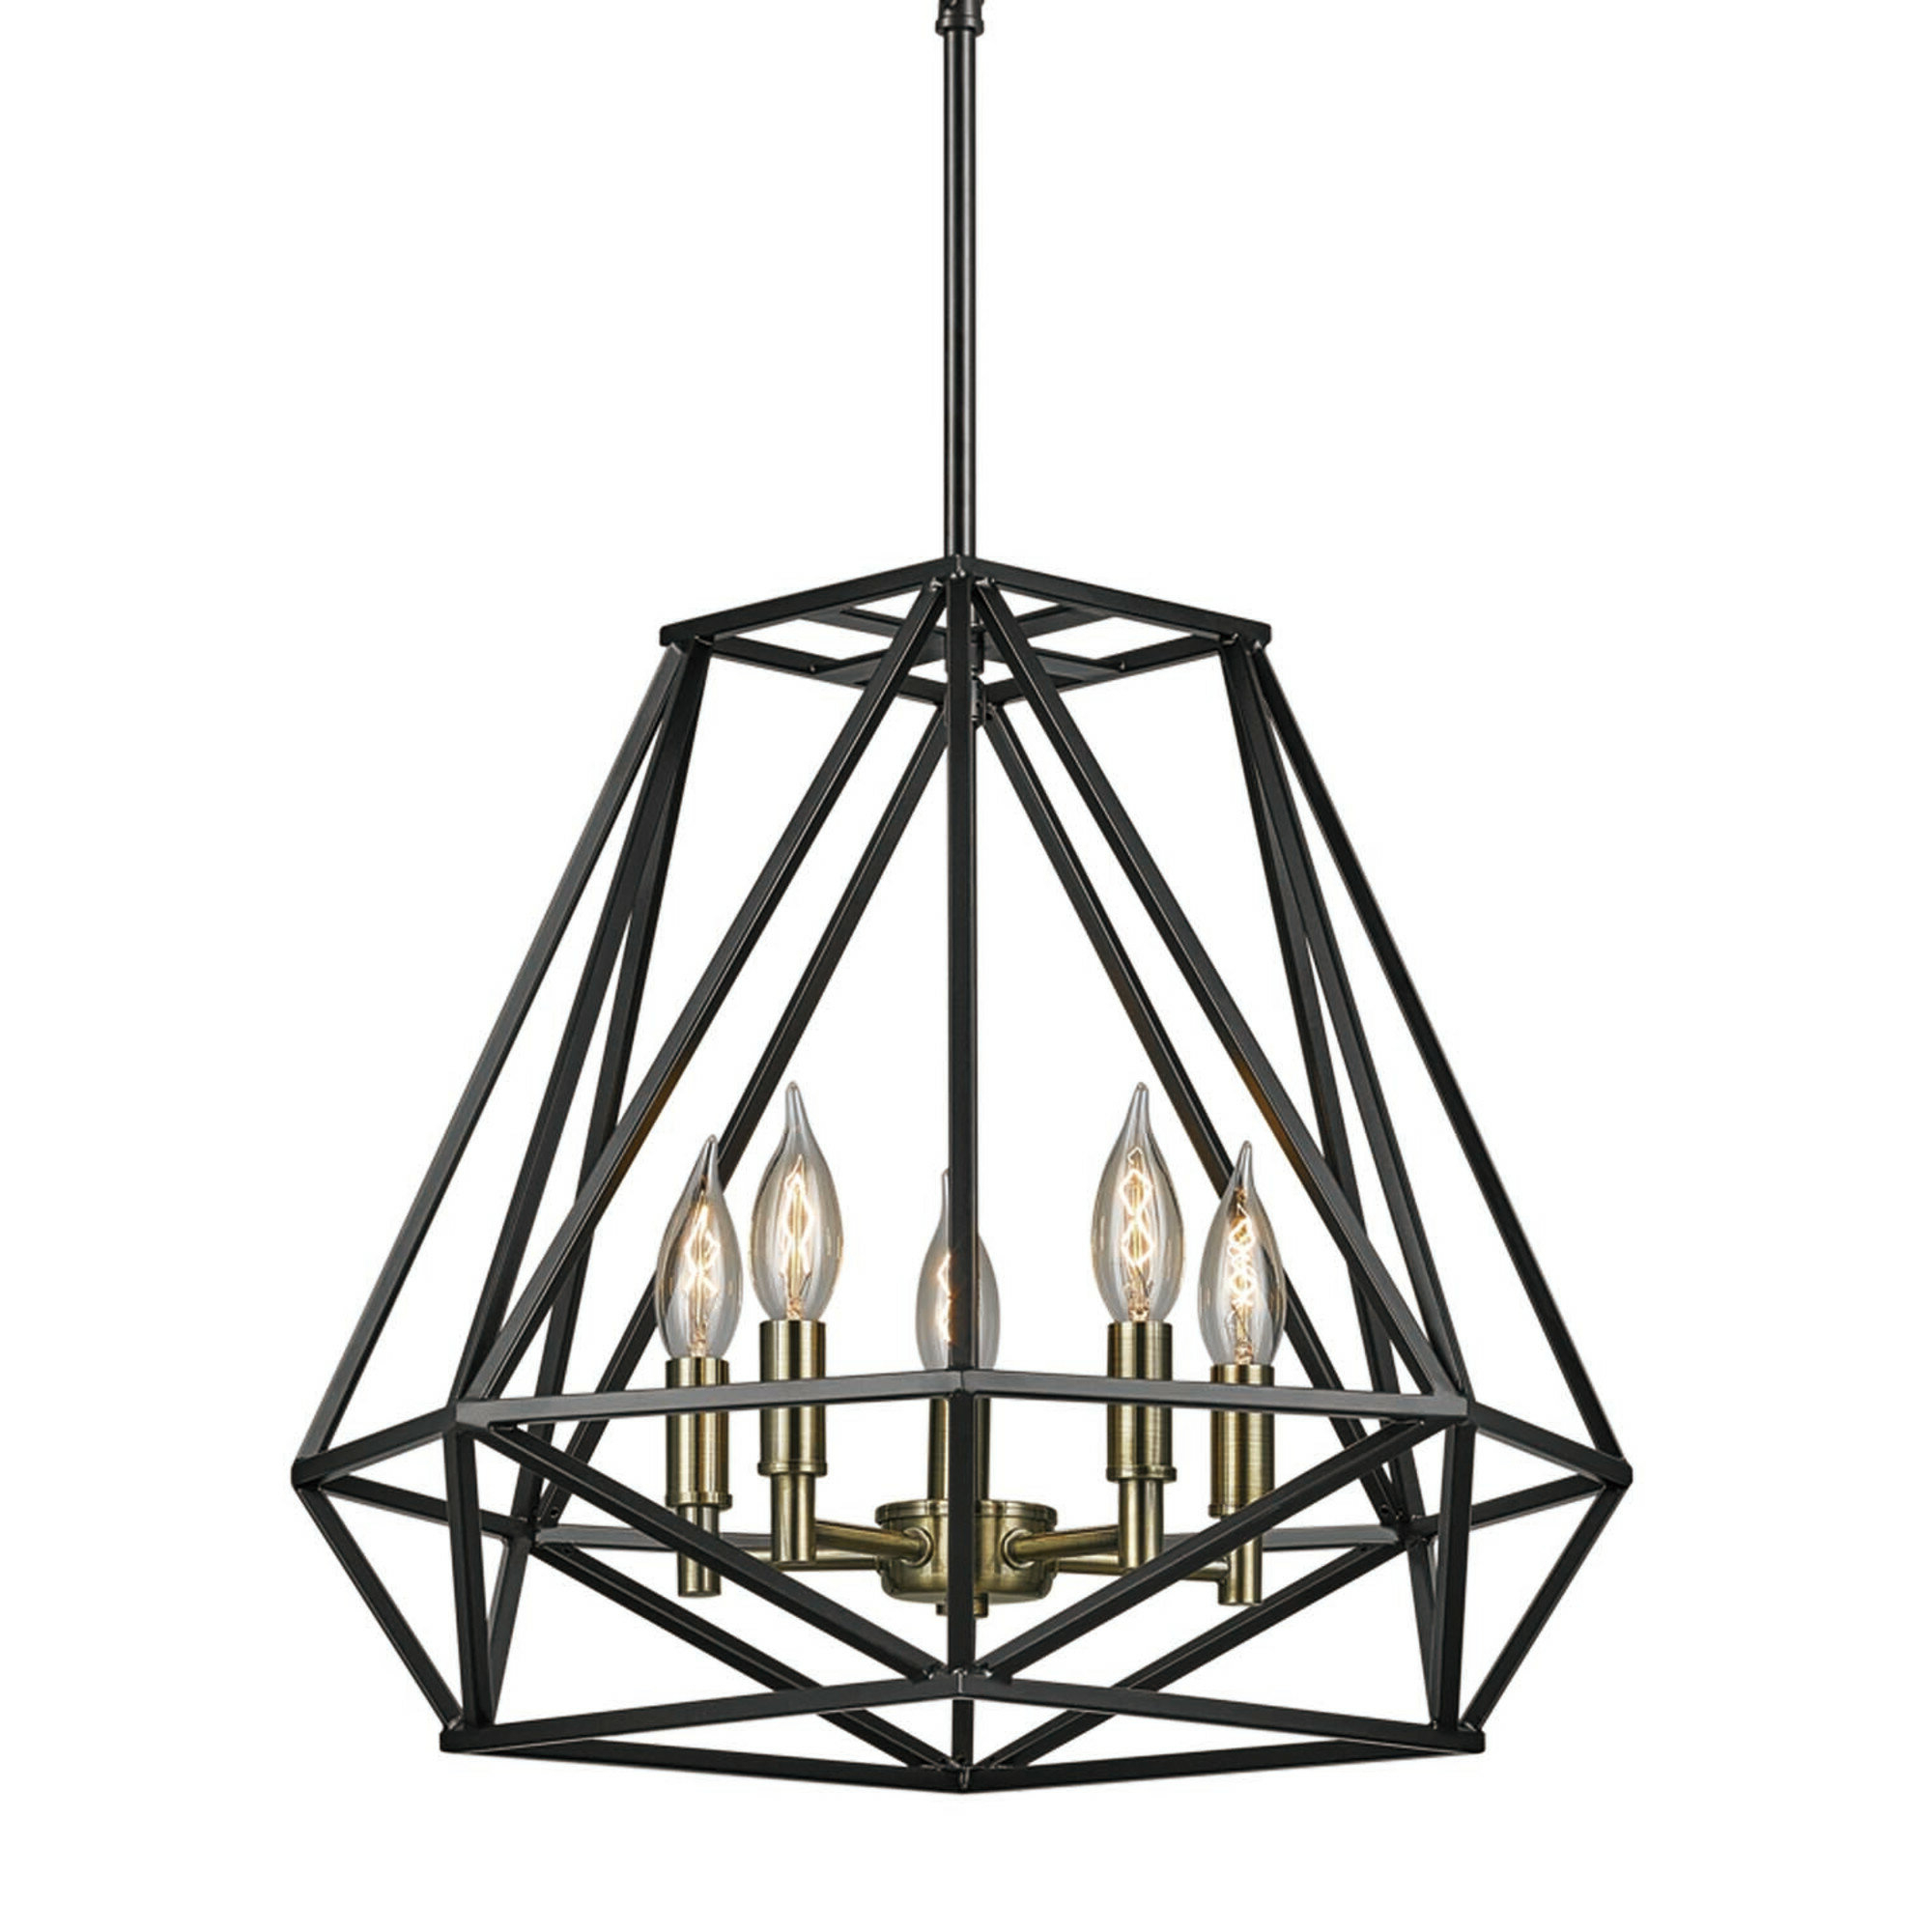 Tabit 5 Light Geometric Chandelier With Most Up To Date Cavanagh 4 Light Geometric Chandeliers (View 9 of 25)